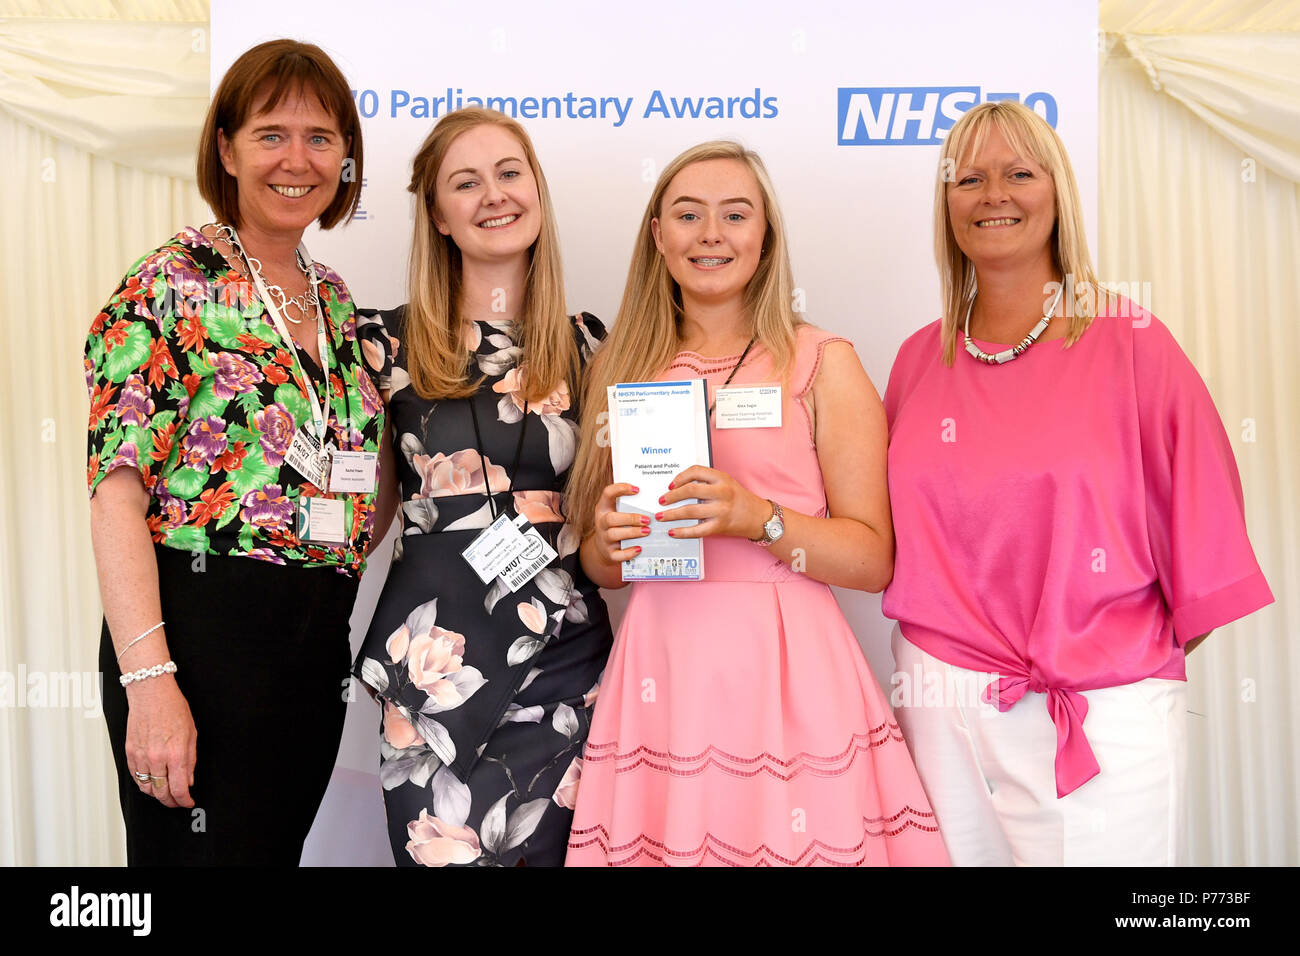 Rebecca Booth (second left) and Alex Sagar (second right) of Victoria's Voice Youth Forum in Blackpool are given the Patient and Public Involvement Award from Kate Smith (right) and Rachel Power (left) during the NHS70 parliamentary awards for the 70th anniversary of the NHS at the House of Commons in Westminster, London. - Stock Image